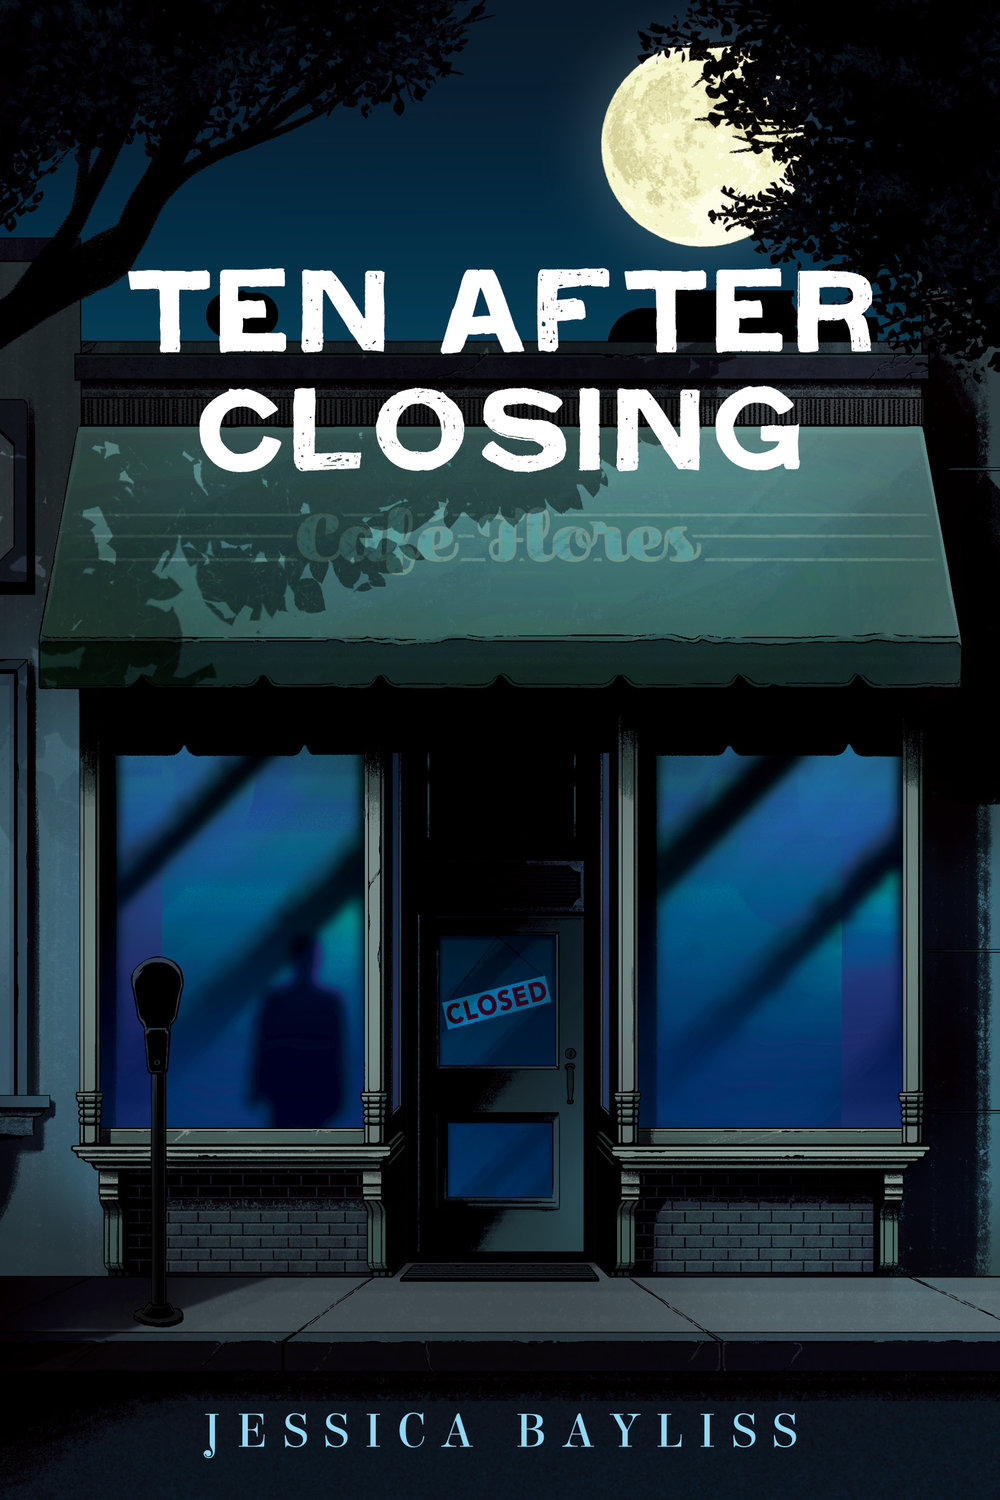 Ten After Closing_9781510732070_FC.jpg